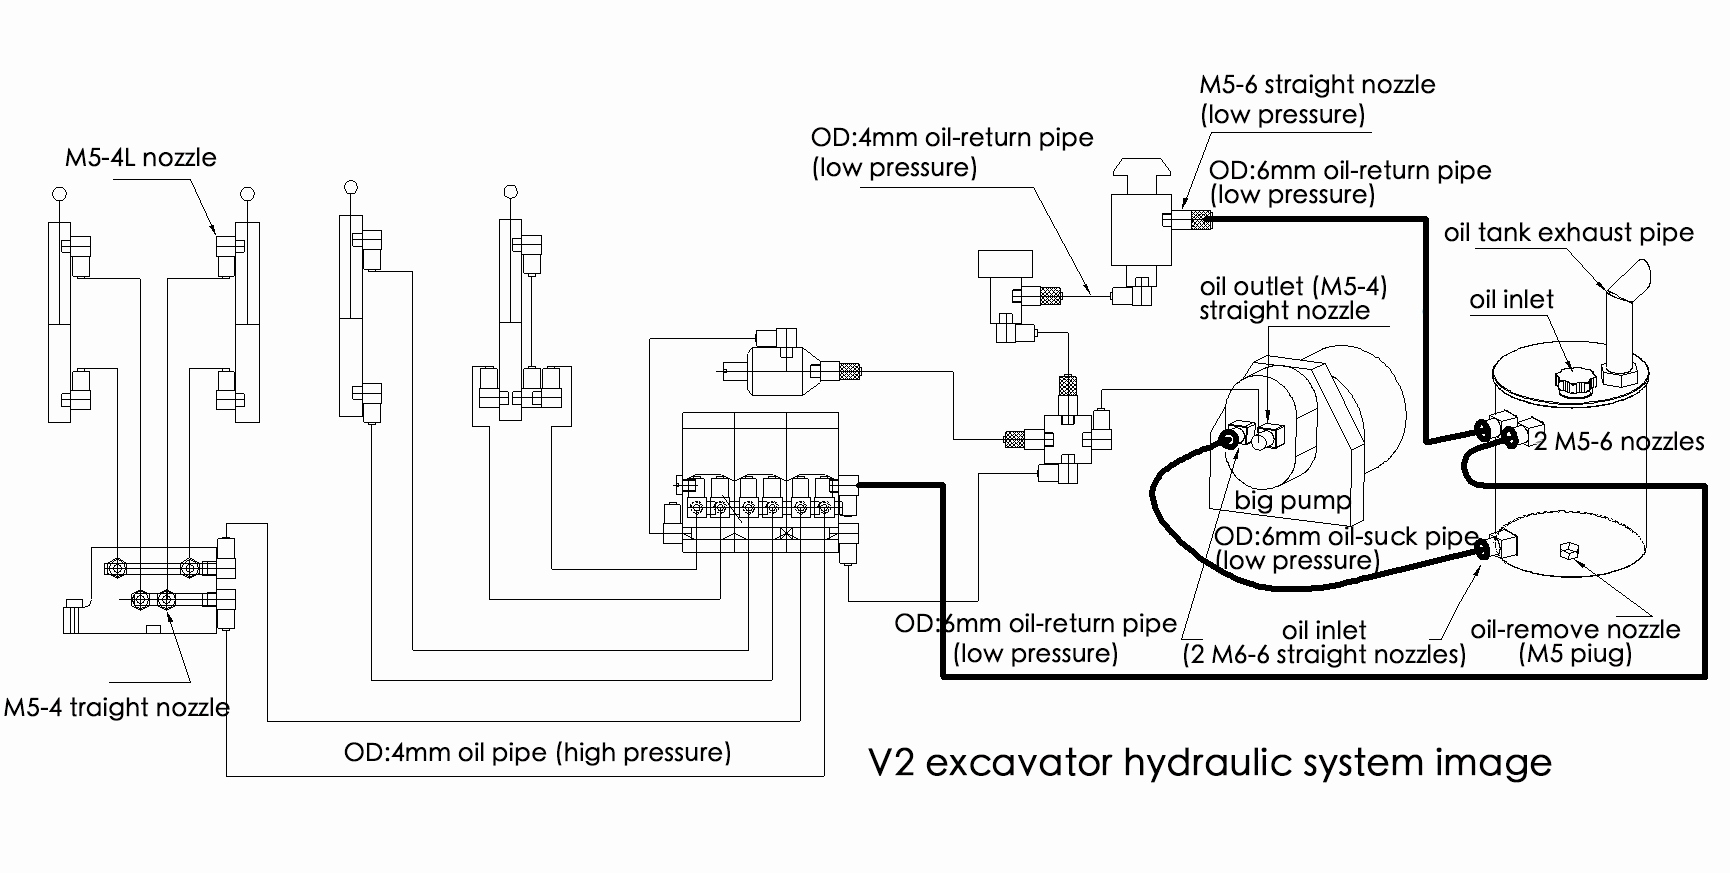 Spx Stone Hydraulic Pump Wiring Diagram - 12v Hydraulic Pump Wiring Diagram Collection Full Size Of Wiring Diagram 12 Volt Hydraulic Pump 1d